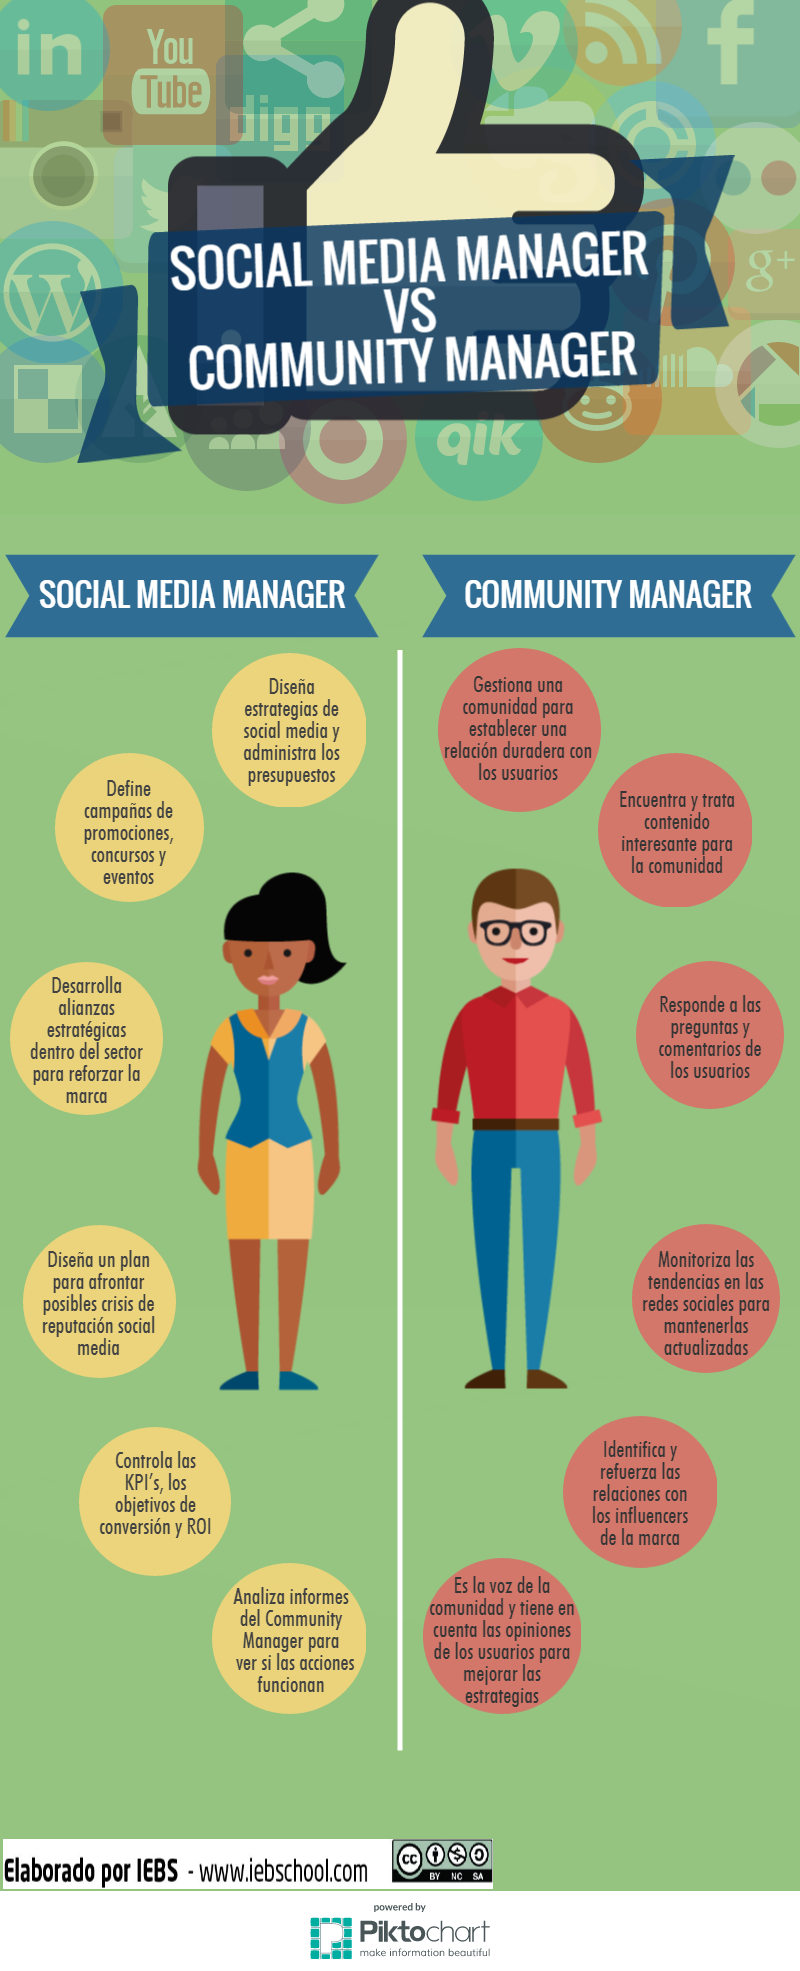 [Infografía] Social Media Manager VS Community Manager